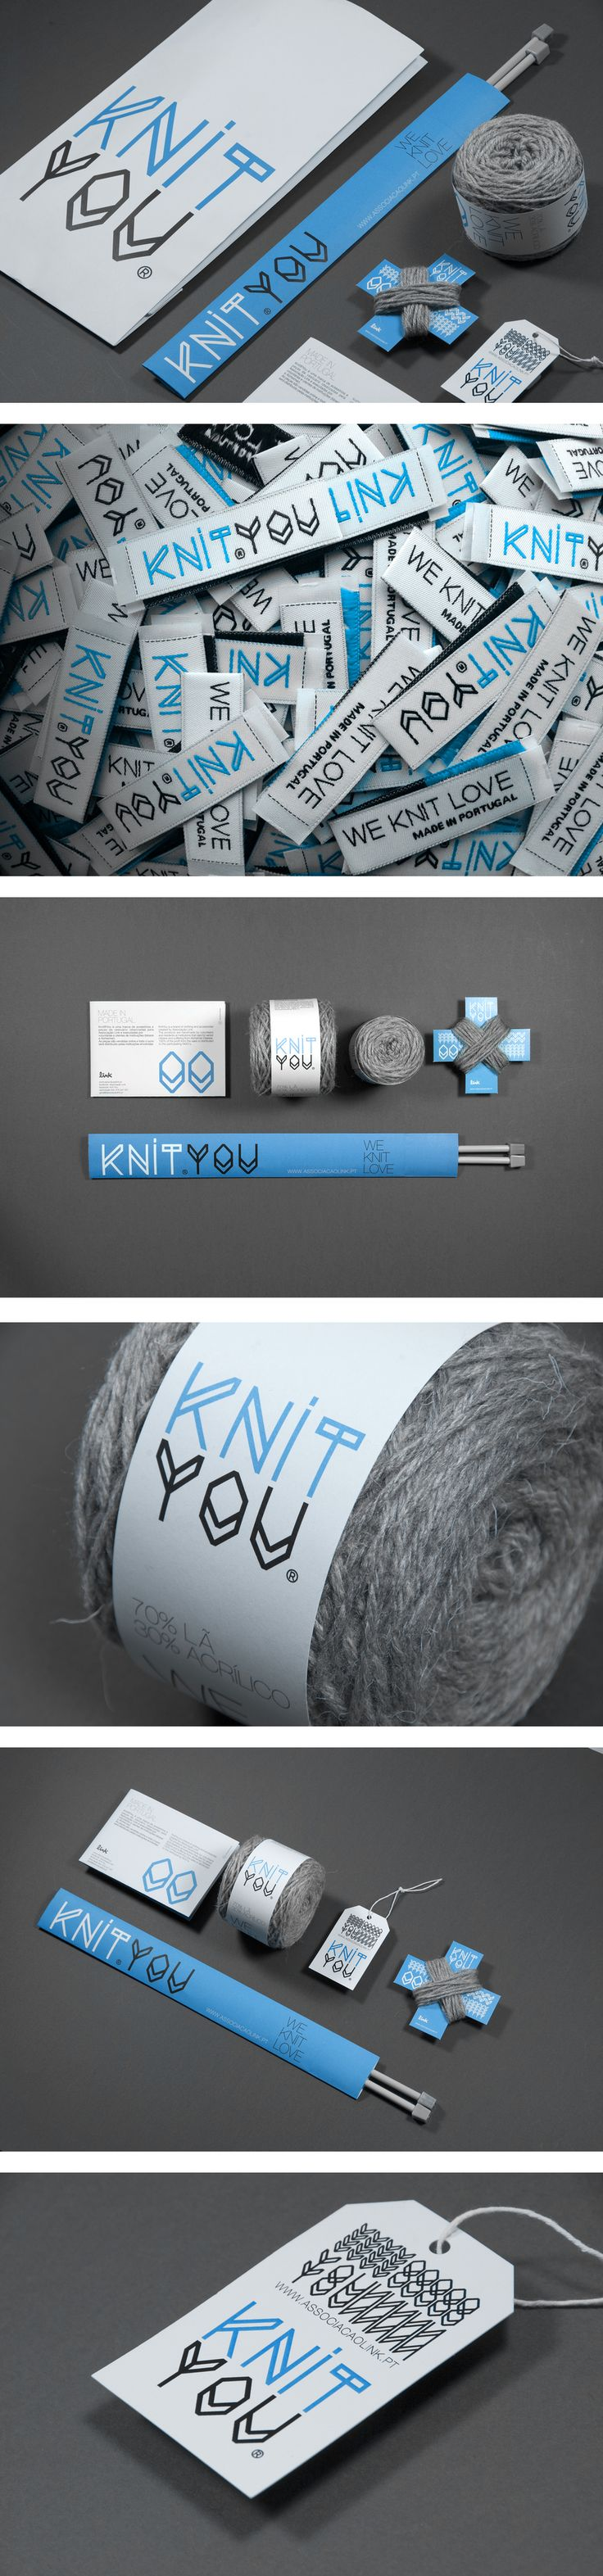 UMA Studio has designed a brand identity and packaging for Knit You, a non-profit organization for Alzheimer's sufferers. Knit You is a knit cloth and accessory brand made by people that live and work in alzheimer hospices care institutions. The logo is reminiscent of a knit pattern and the entire package was designed to help volunteers get started on creating clothing and accessories. 100% of the profits from sales are distributed to senior citizens associated with the organization.